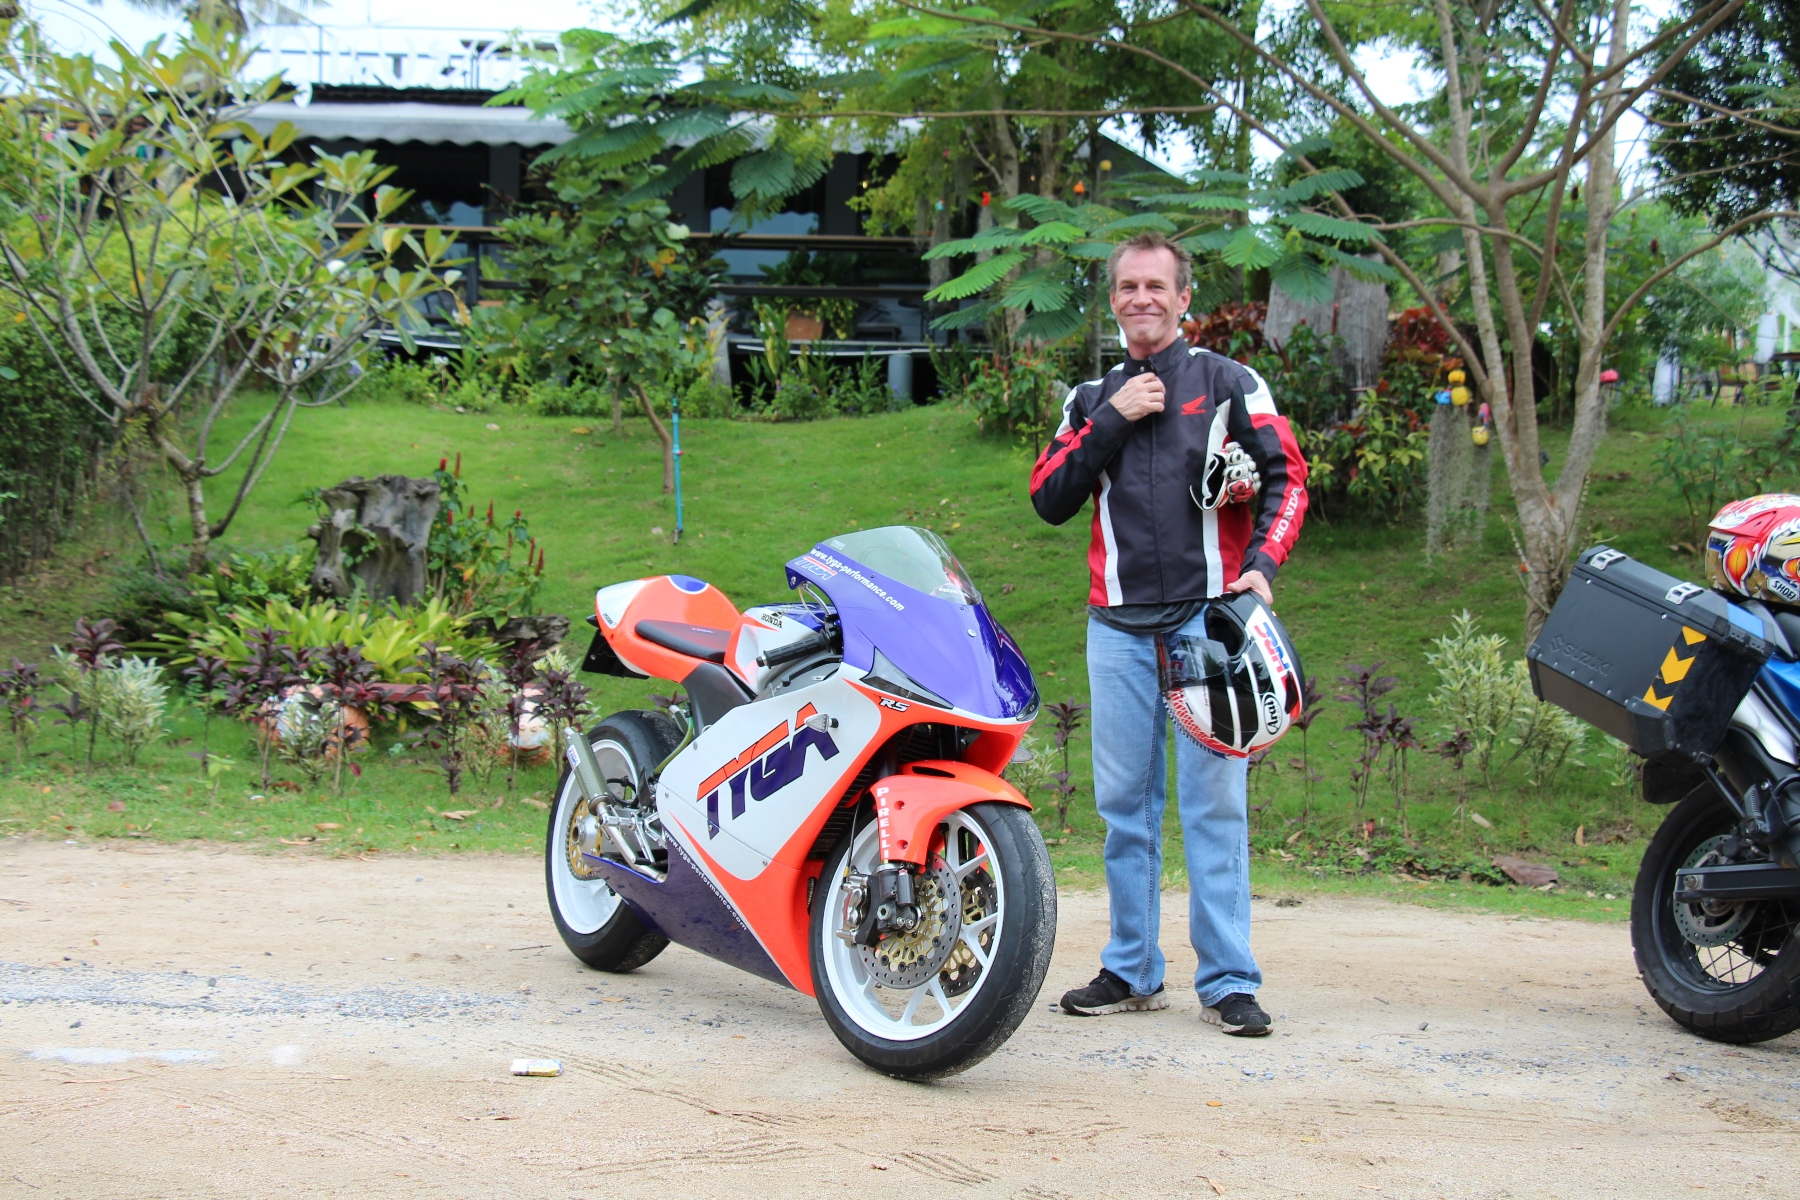 Tyga Street Nx 5 Rs250r S Performance Charging System Wiring And Main Power Supply Circuit Ndash 2006 Aprilia Rs125 The Biggest Problem Now Is What To Build Ride Next As Will Be Very Hard Better